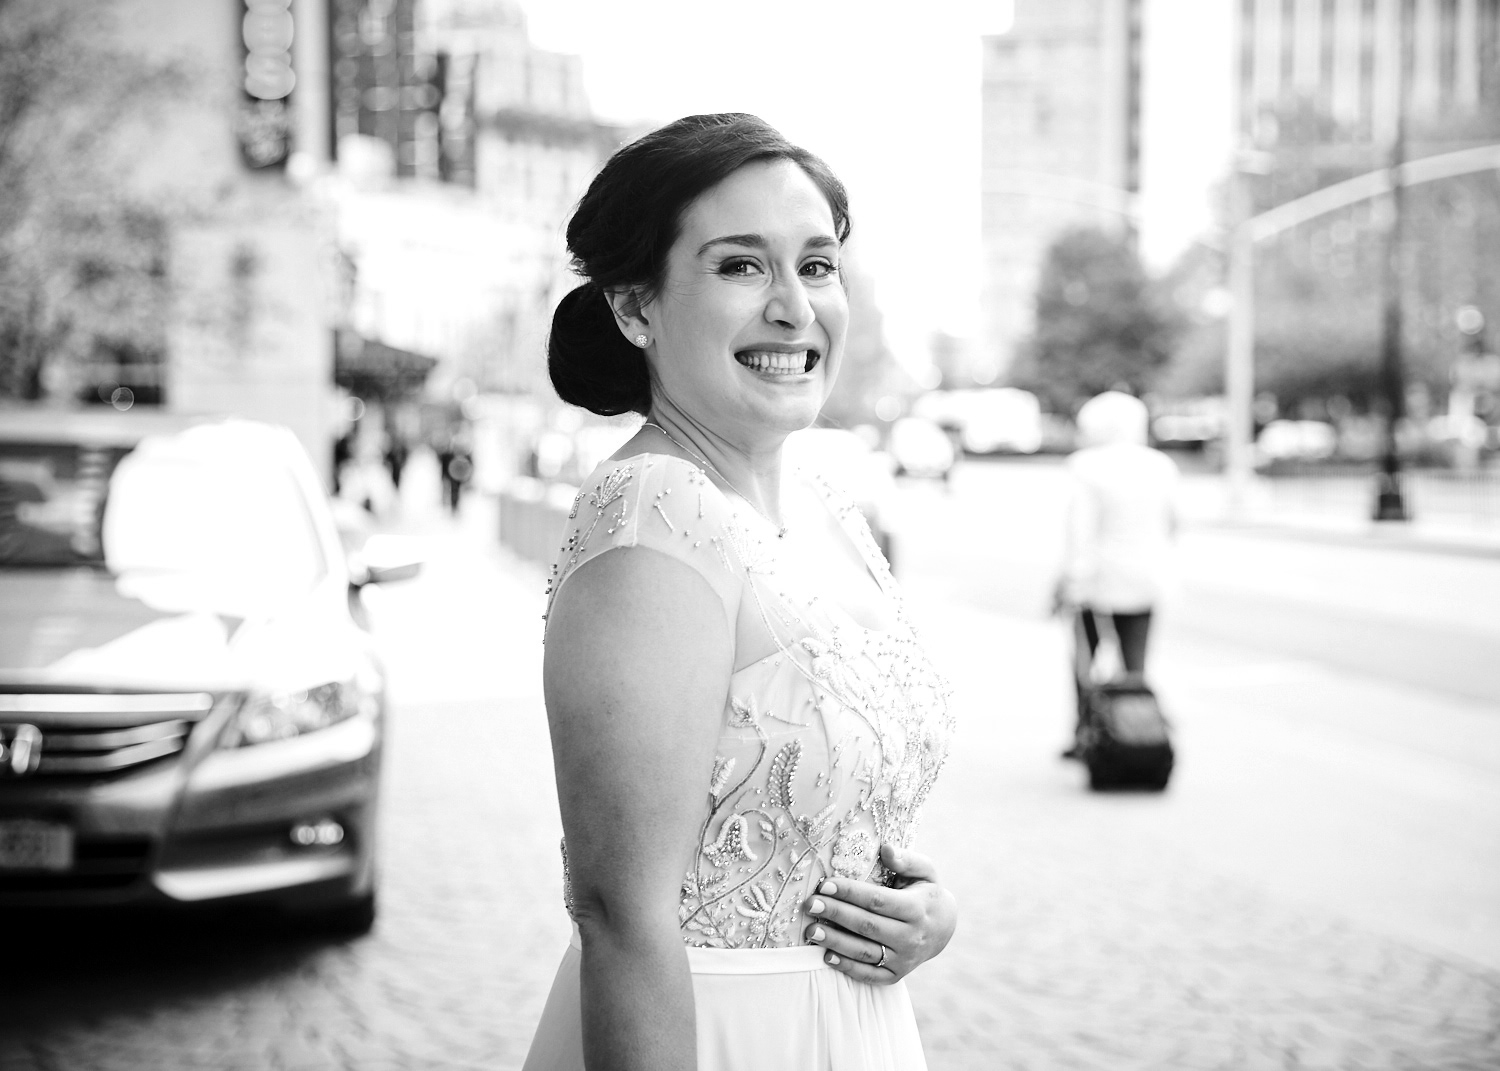 161022_A&B_26BridgeStWedding_By_BriJohnsonWeddings_0027.jpg